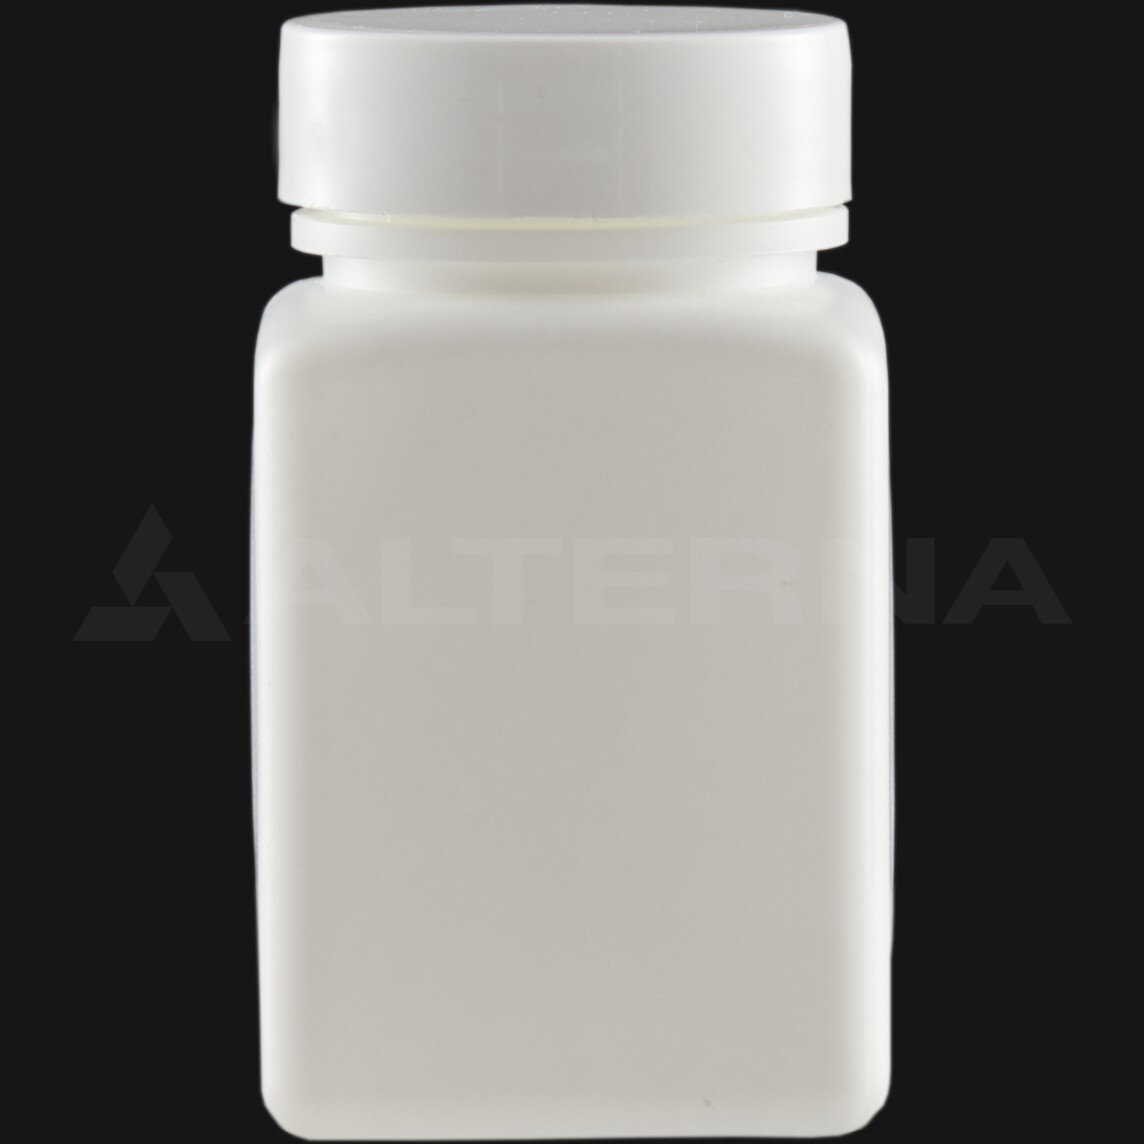 80 ml HDPE Square Pill Bottle with 38 mm Alu. Foil Seal Cap